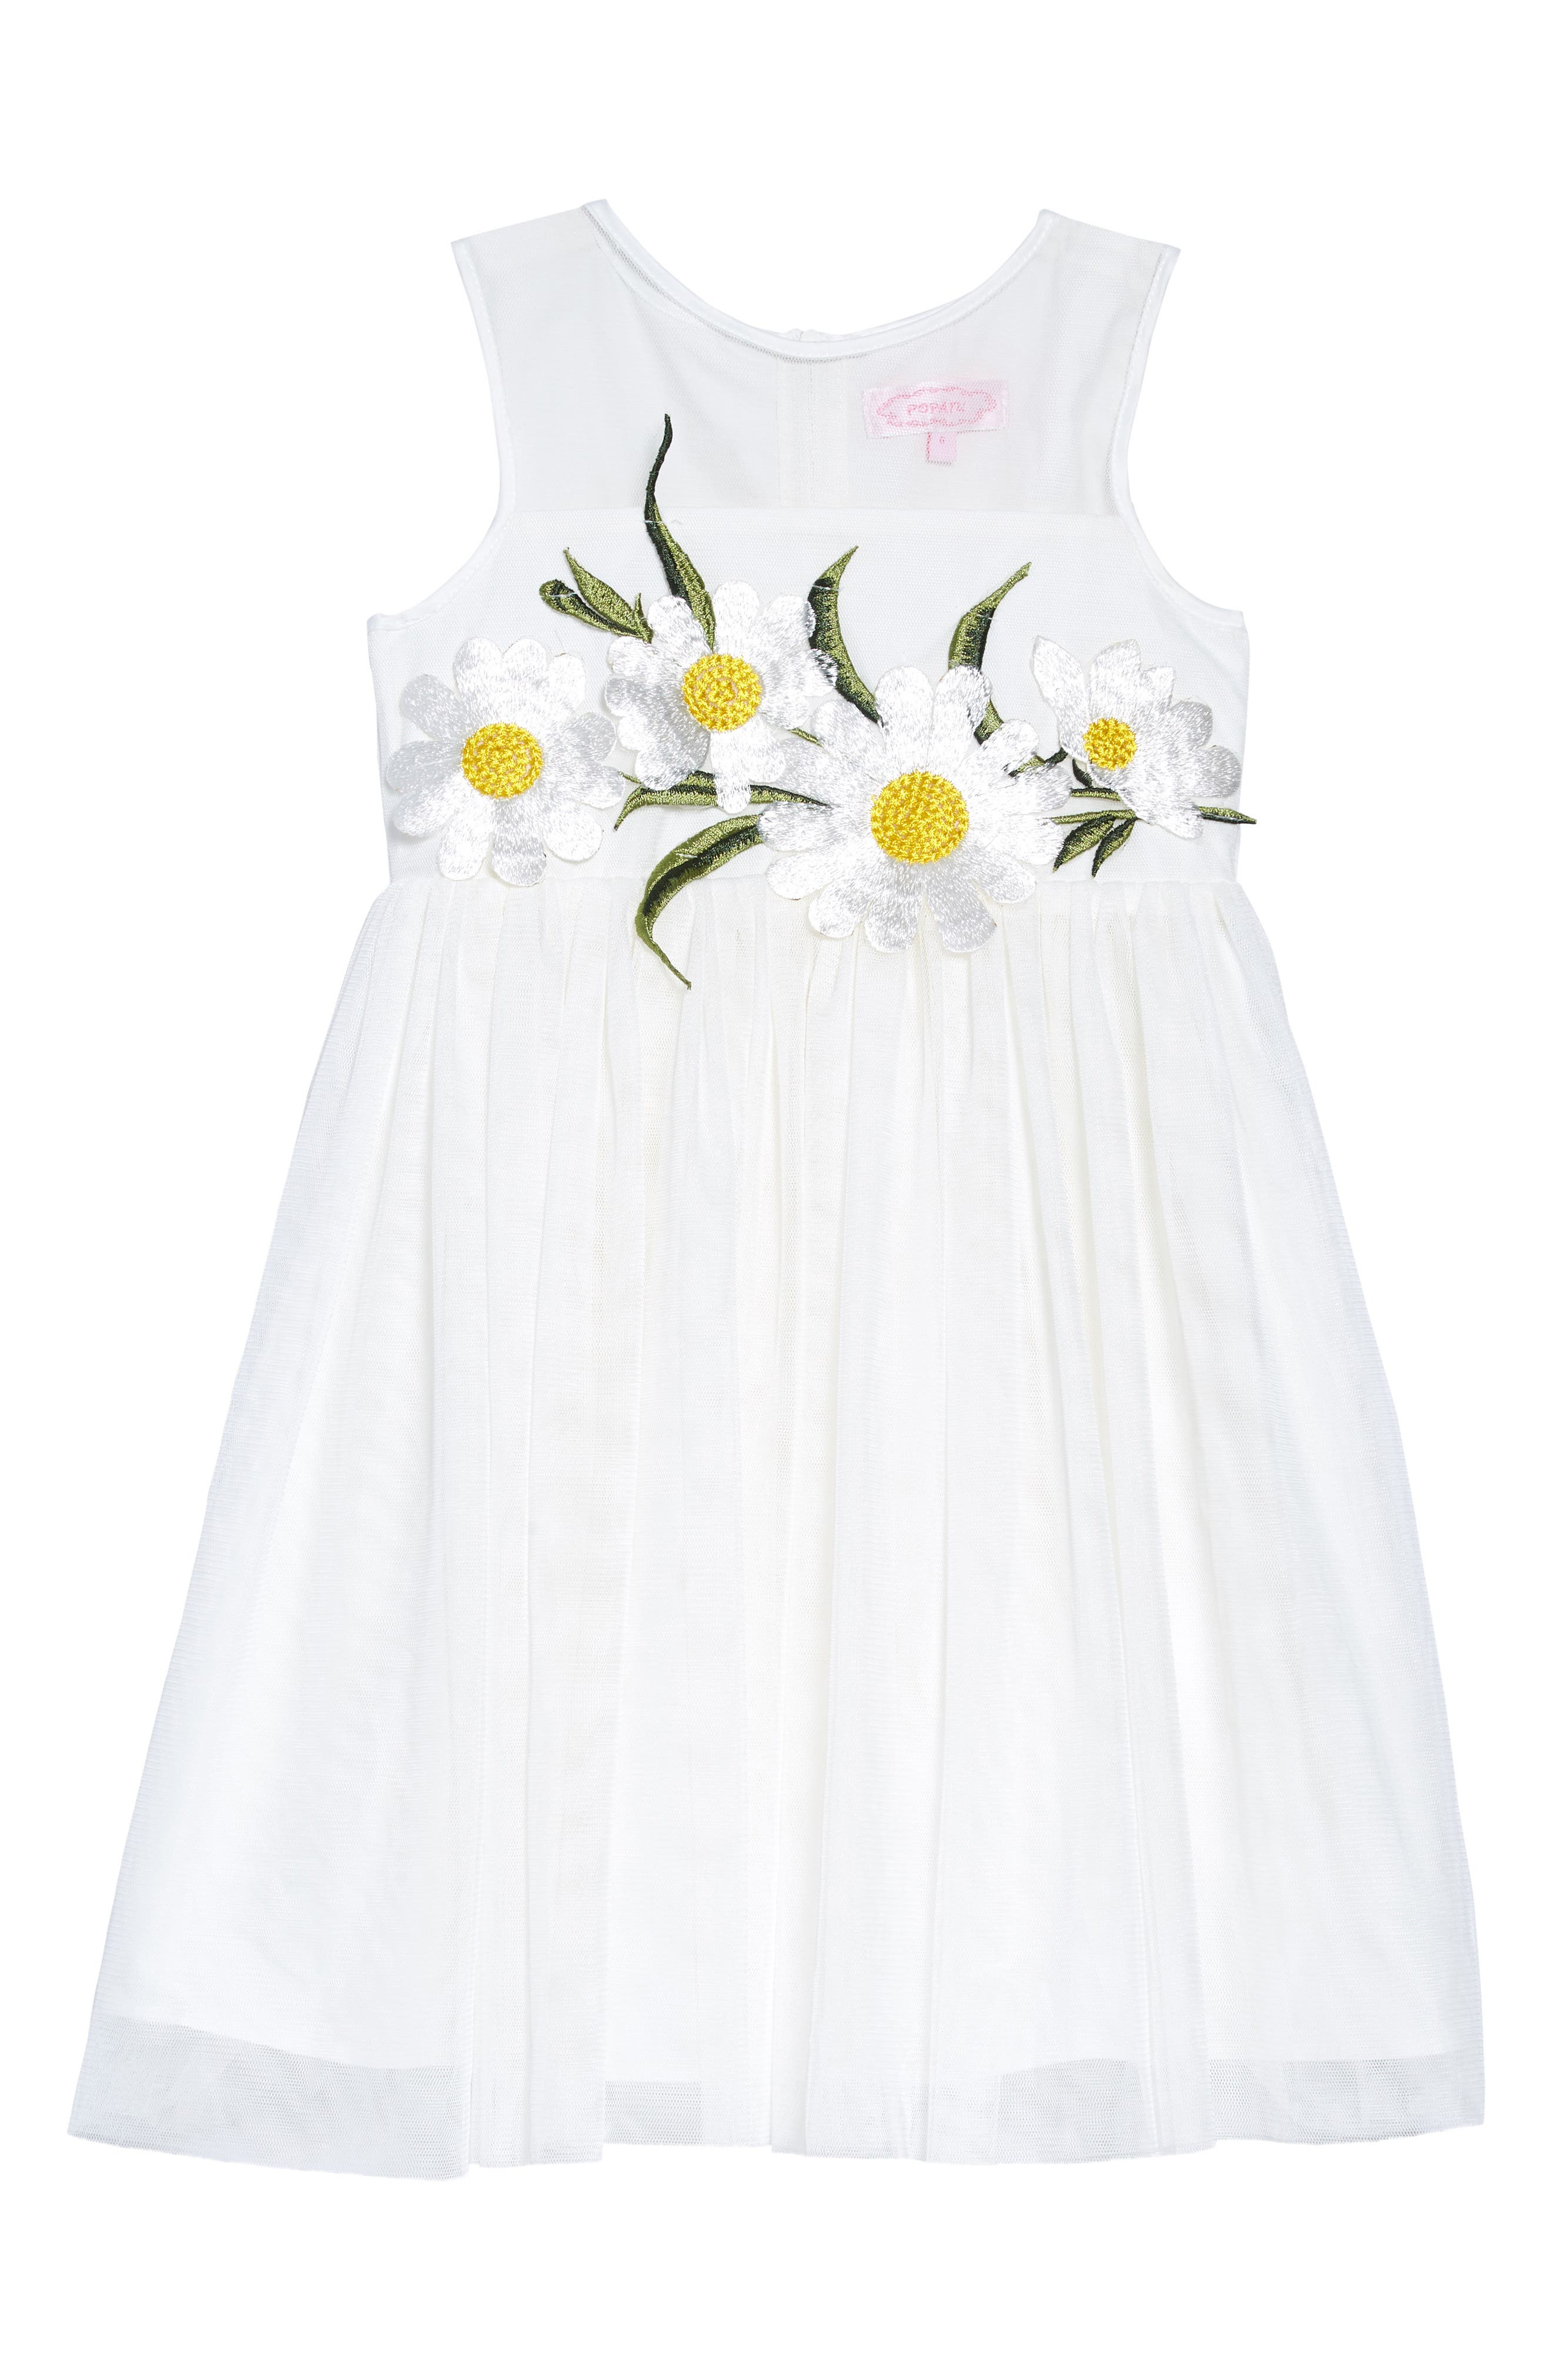 POPATU, Daisy Tulle Dress, Main thumbnail 1, color, WHITE